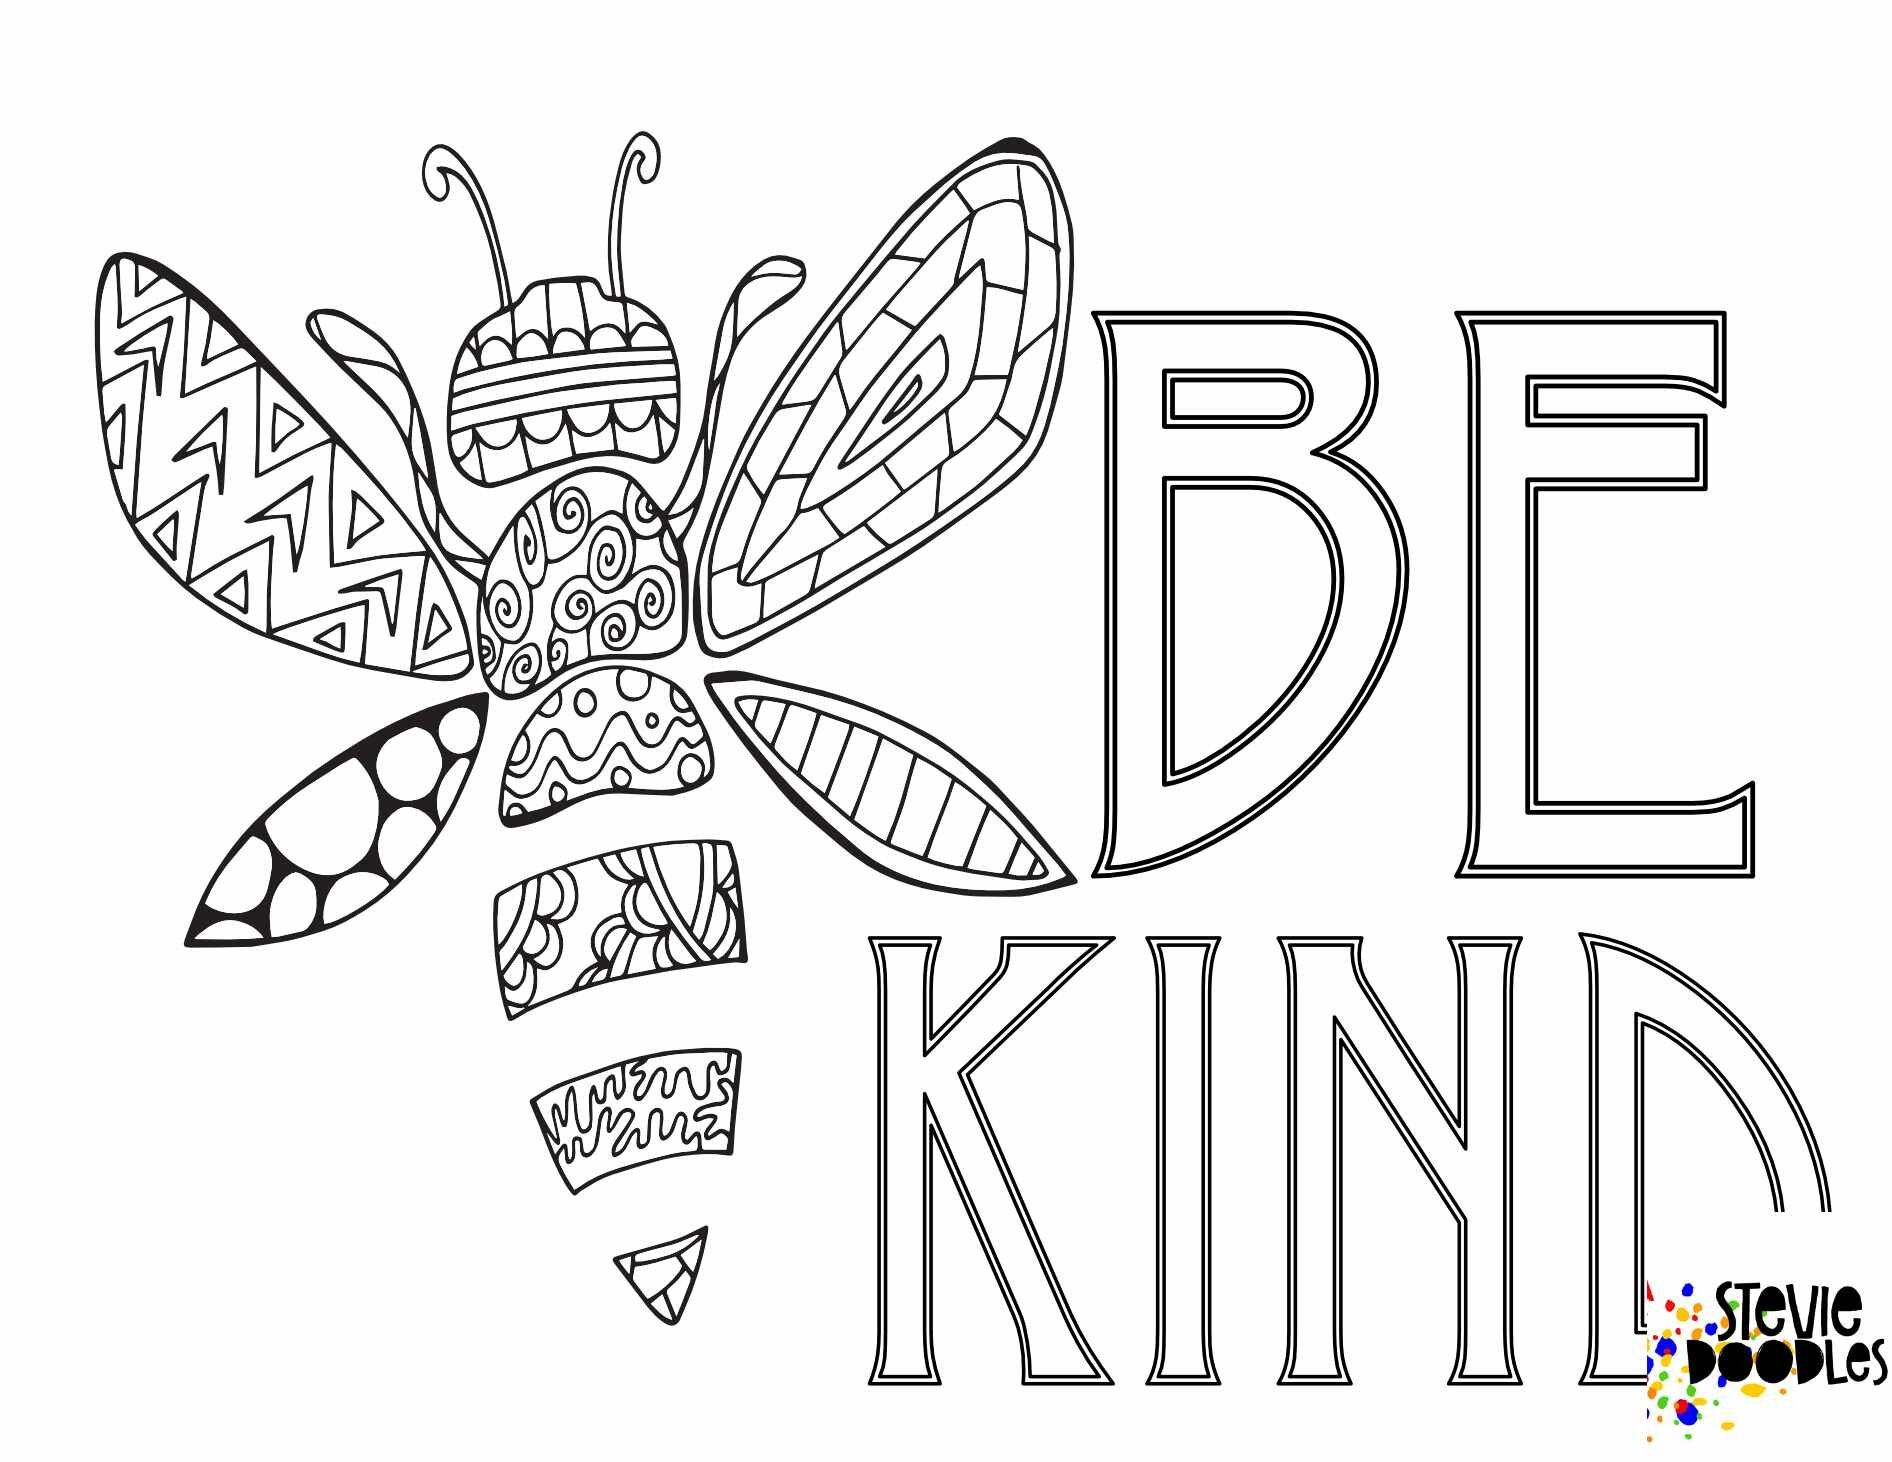 6 Free Be Kind Printable Coloring Pages Stevie Doodles Bee Coloring Pages Crayola Coloring Pages Abstract Coloring Pages